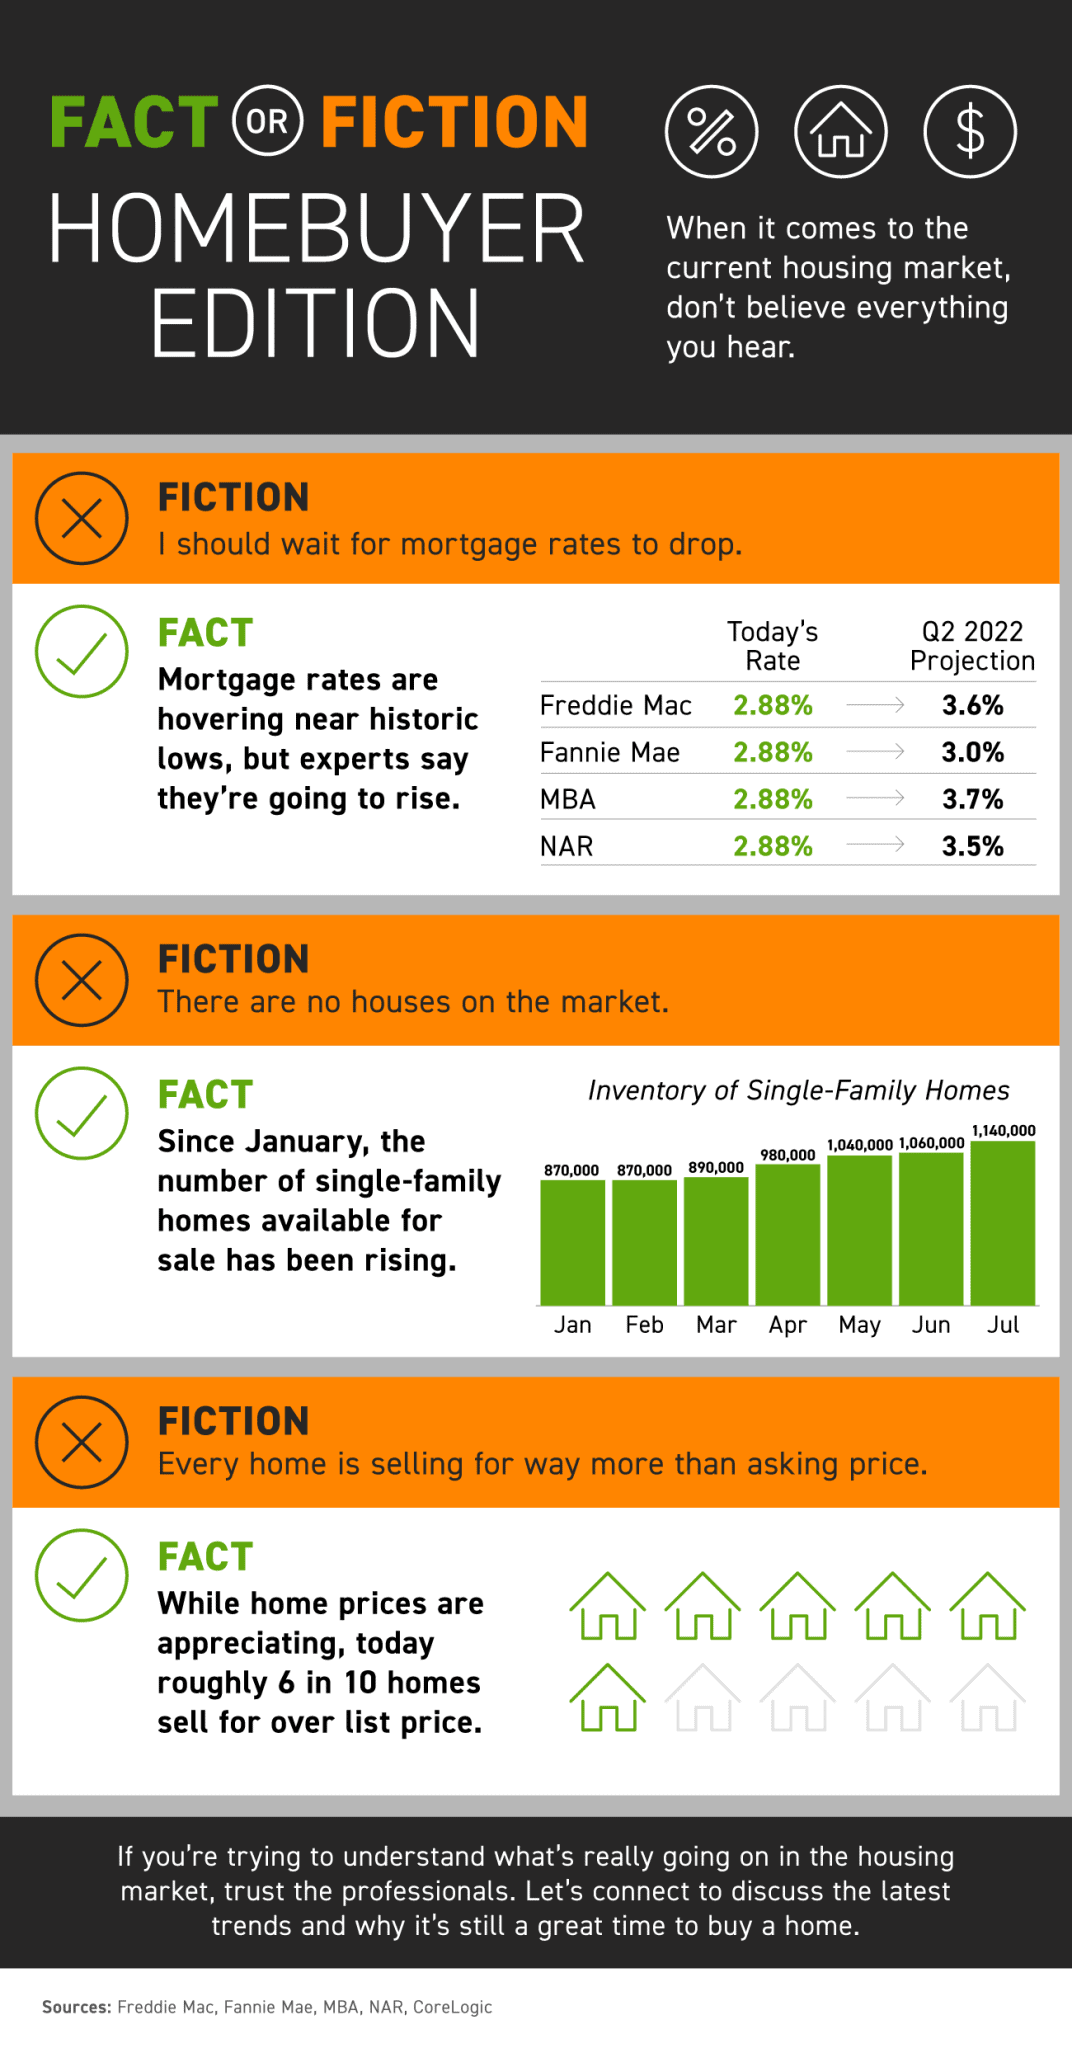 Fact or Fiction - Homebuyer Edition